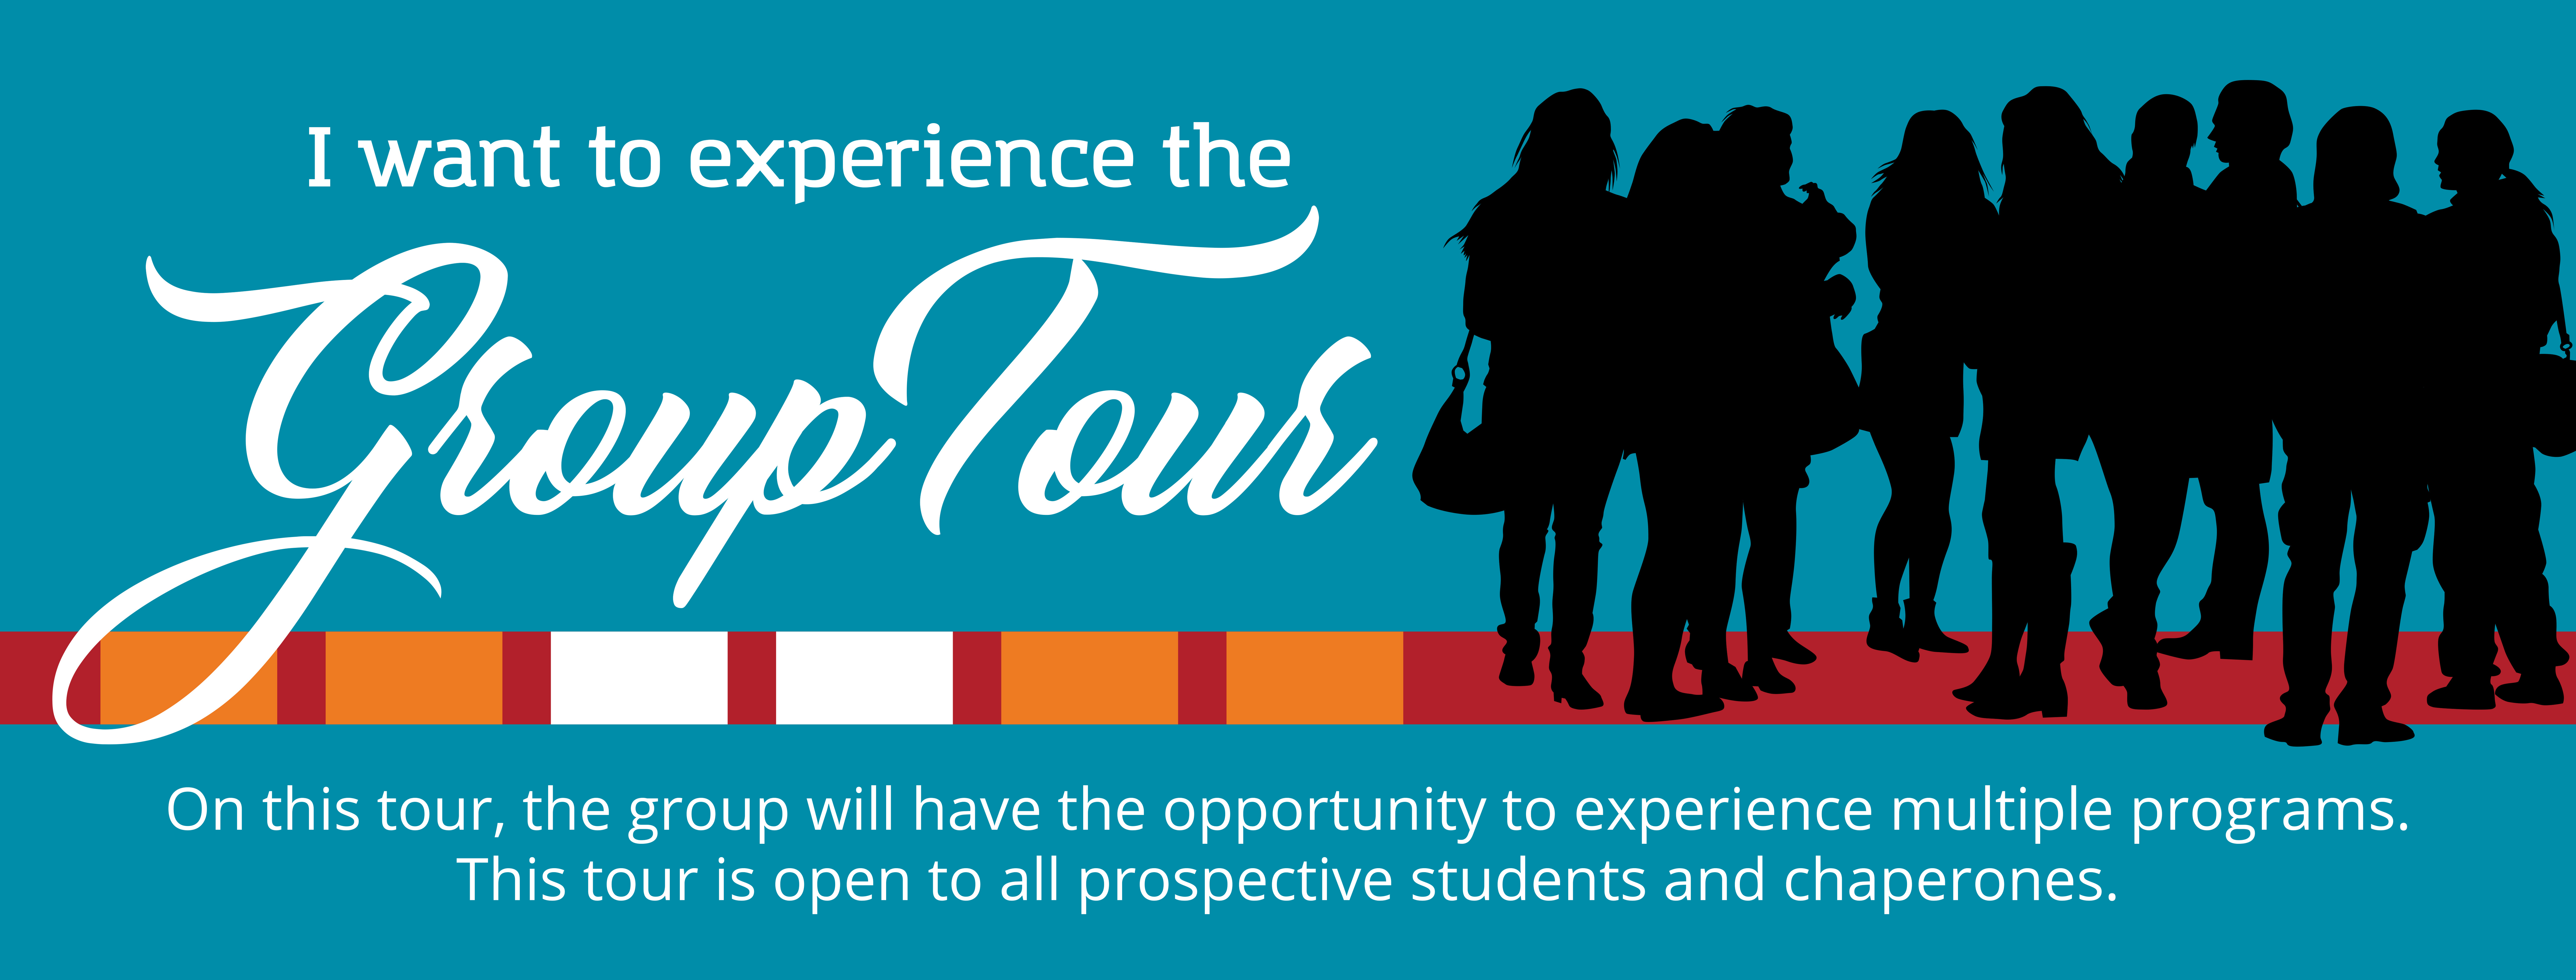 Group Tour button. Click here to experience the group tour. On this tour, the group will have the opportunity to experience multiple programs. This tour is open to all prospective students and chaperones.